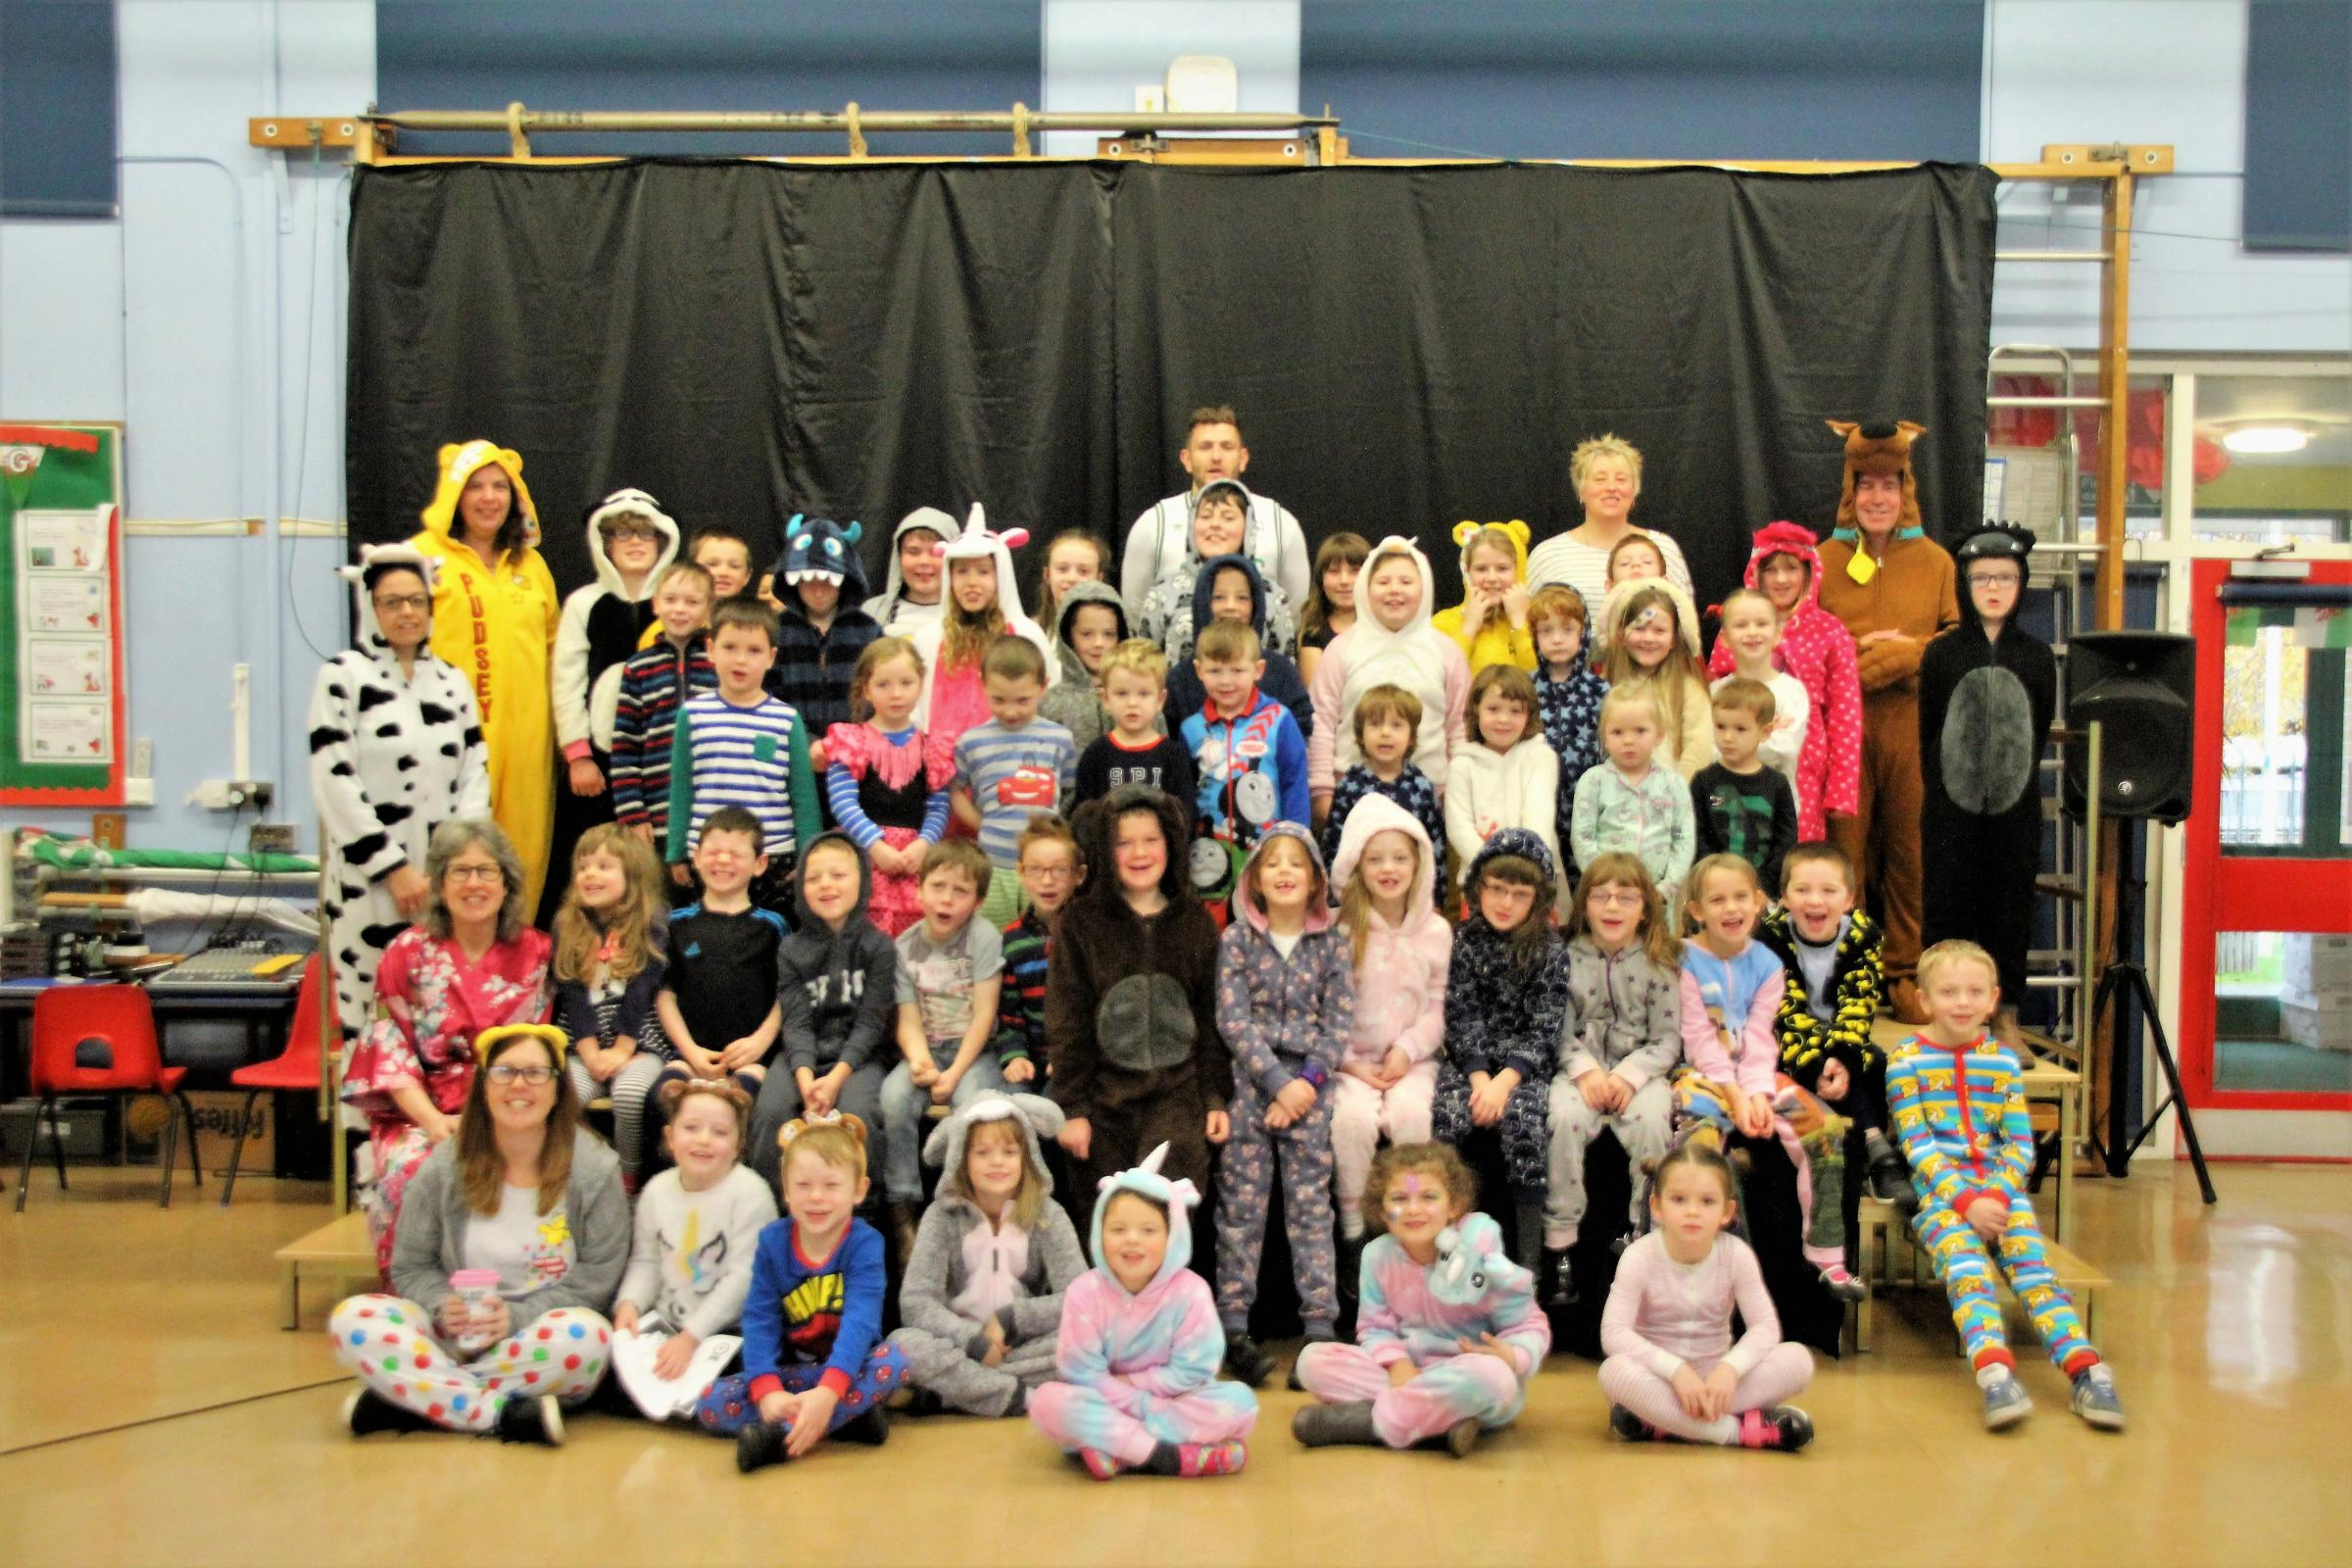 Children and staff from Radnor Valley school and Radnor Valley Rainbows